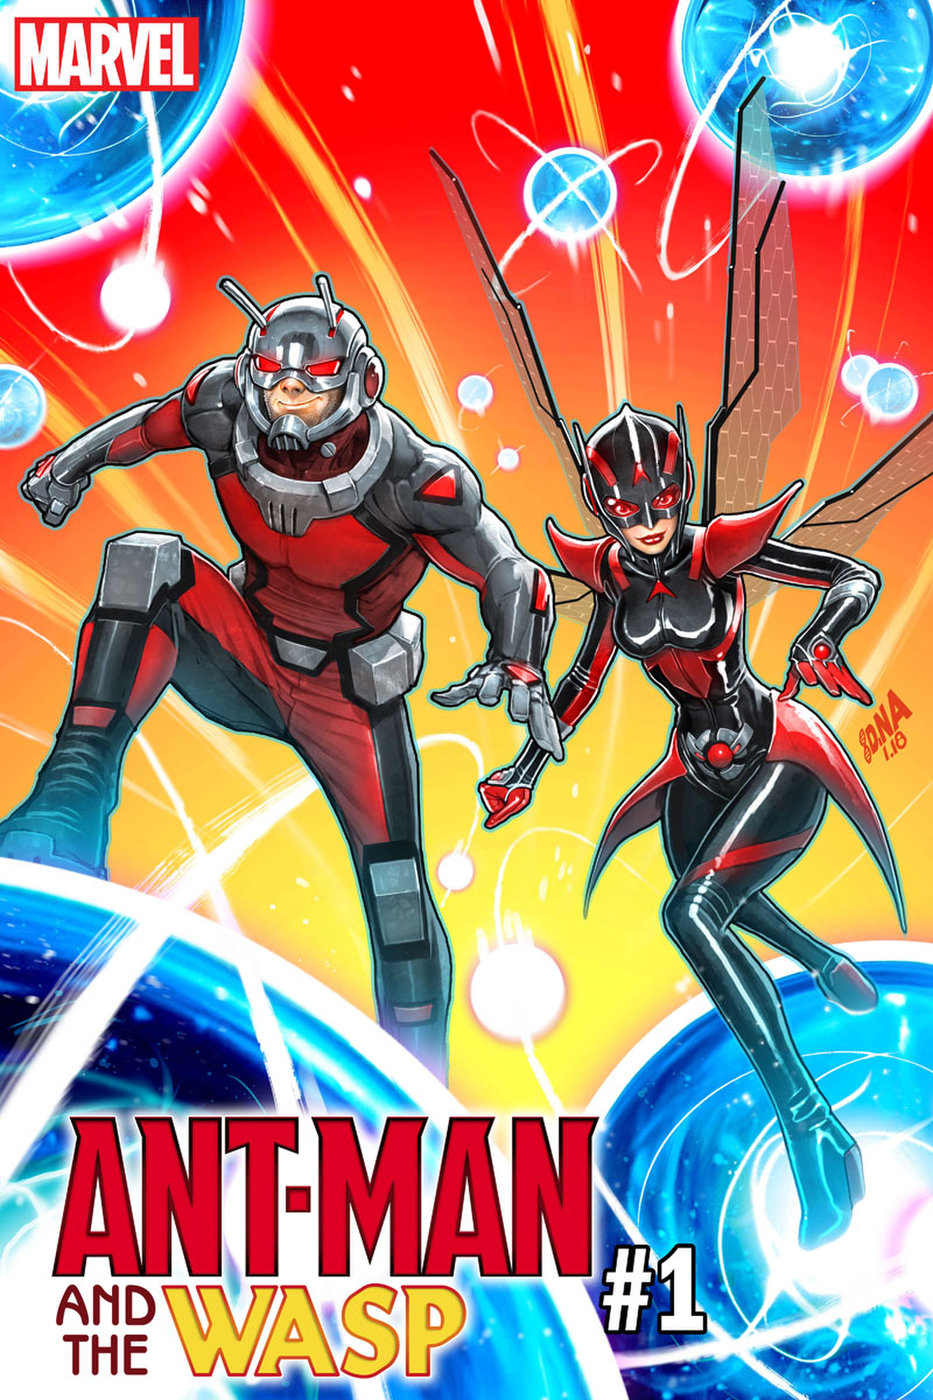 Ant-Man & the Wasp #1 (of 5) - Publisher: Marvel | Writer: Mark Waid | Artist: JAVIER Garrón | Cover Artist: David Nakayama | Color Artist: Israel Silva | Letterer: VC's Joe Caramagna| Release Date: June 6, 6018 | PRICE: $3.99This review may contains spoilers.Buy this comic from your local comic shop.Buy this comic at Comixology.Read other reviews on the blog.